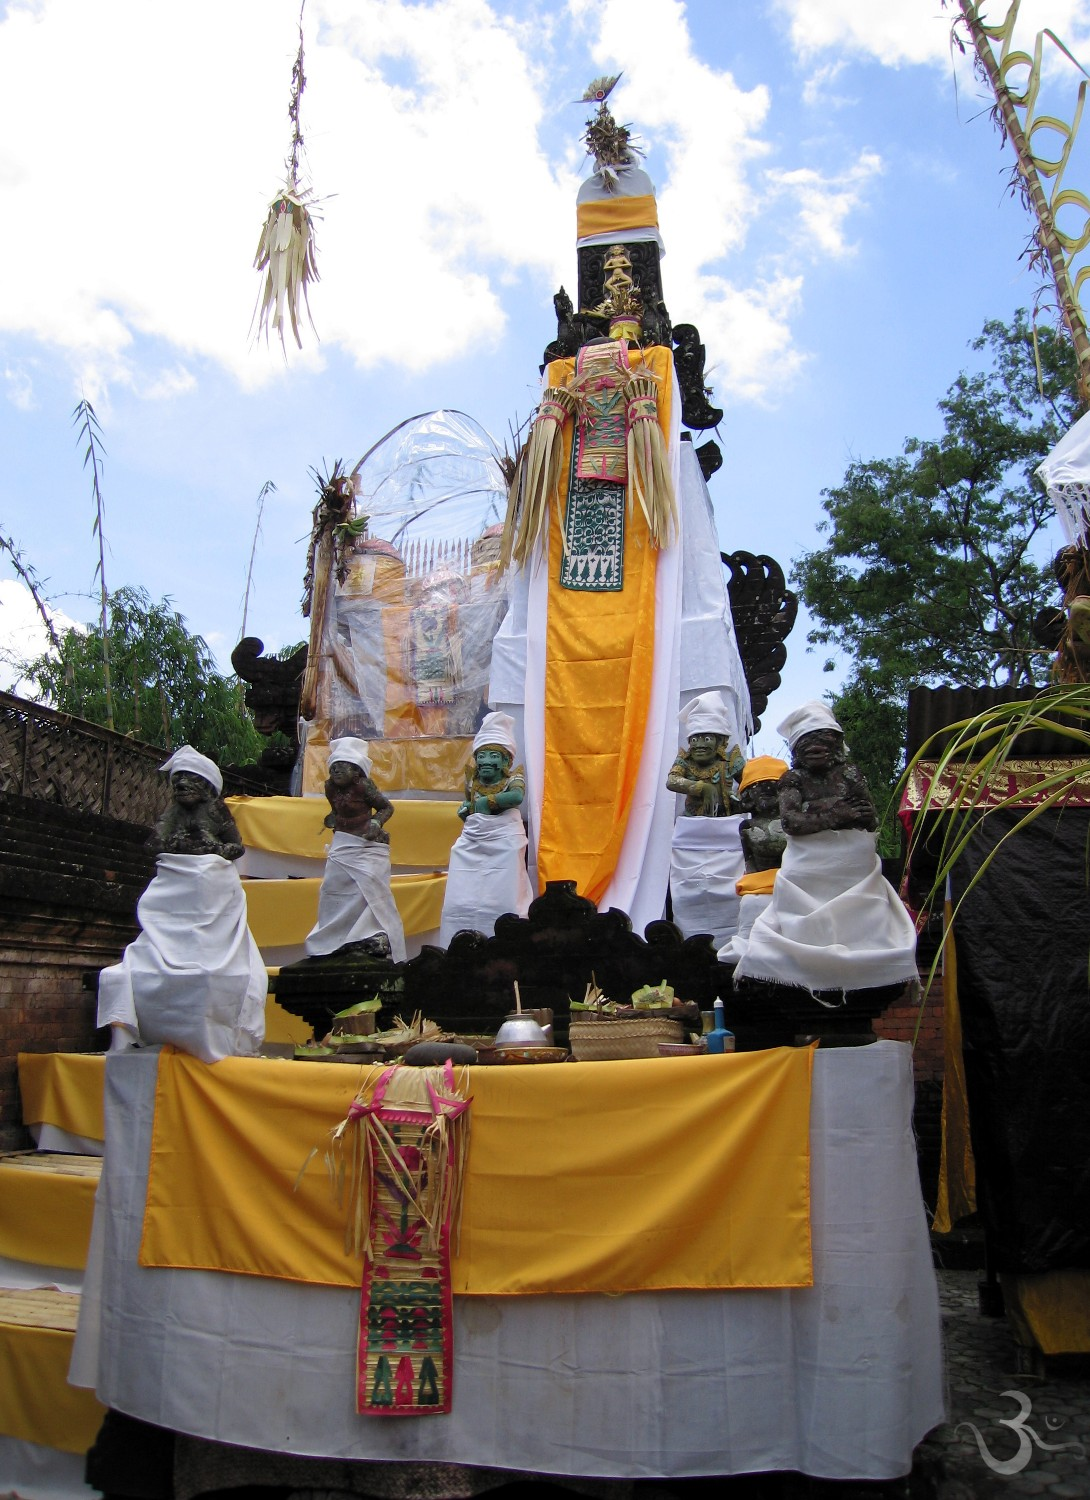 Padmasana throne at Pura Dalem Bakul - Denpasar Timur - is dressed to welcome the deities